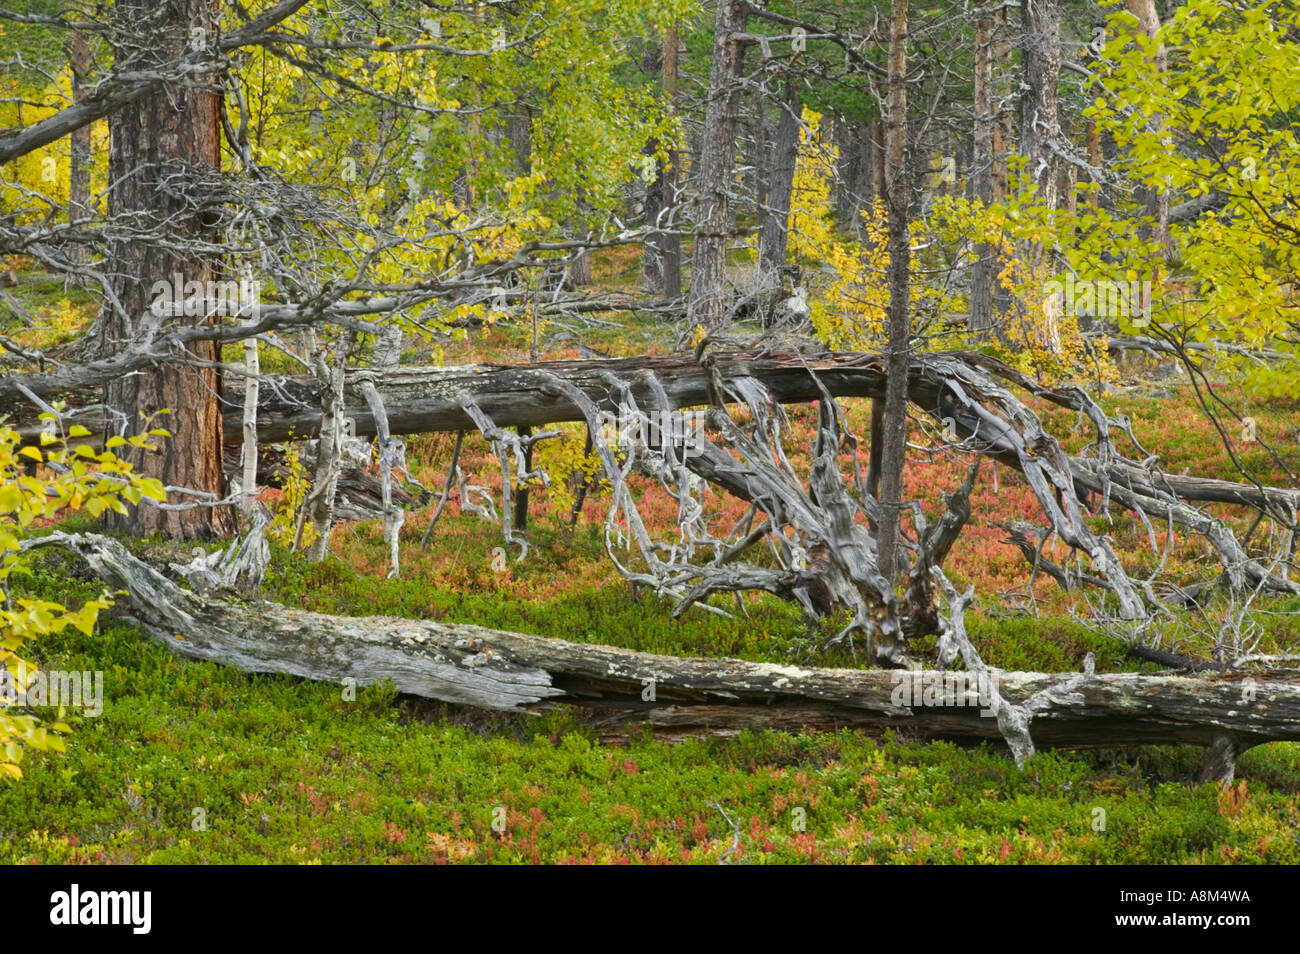 Old growth forest in Stora Sjöfallet National Park; Laponia World Heritage Area, Lapland, Sweden. Stock Photo